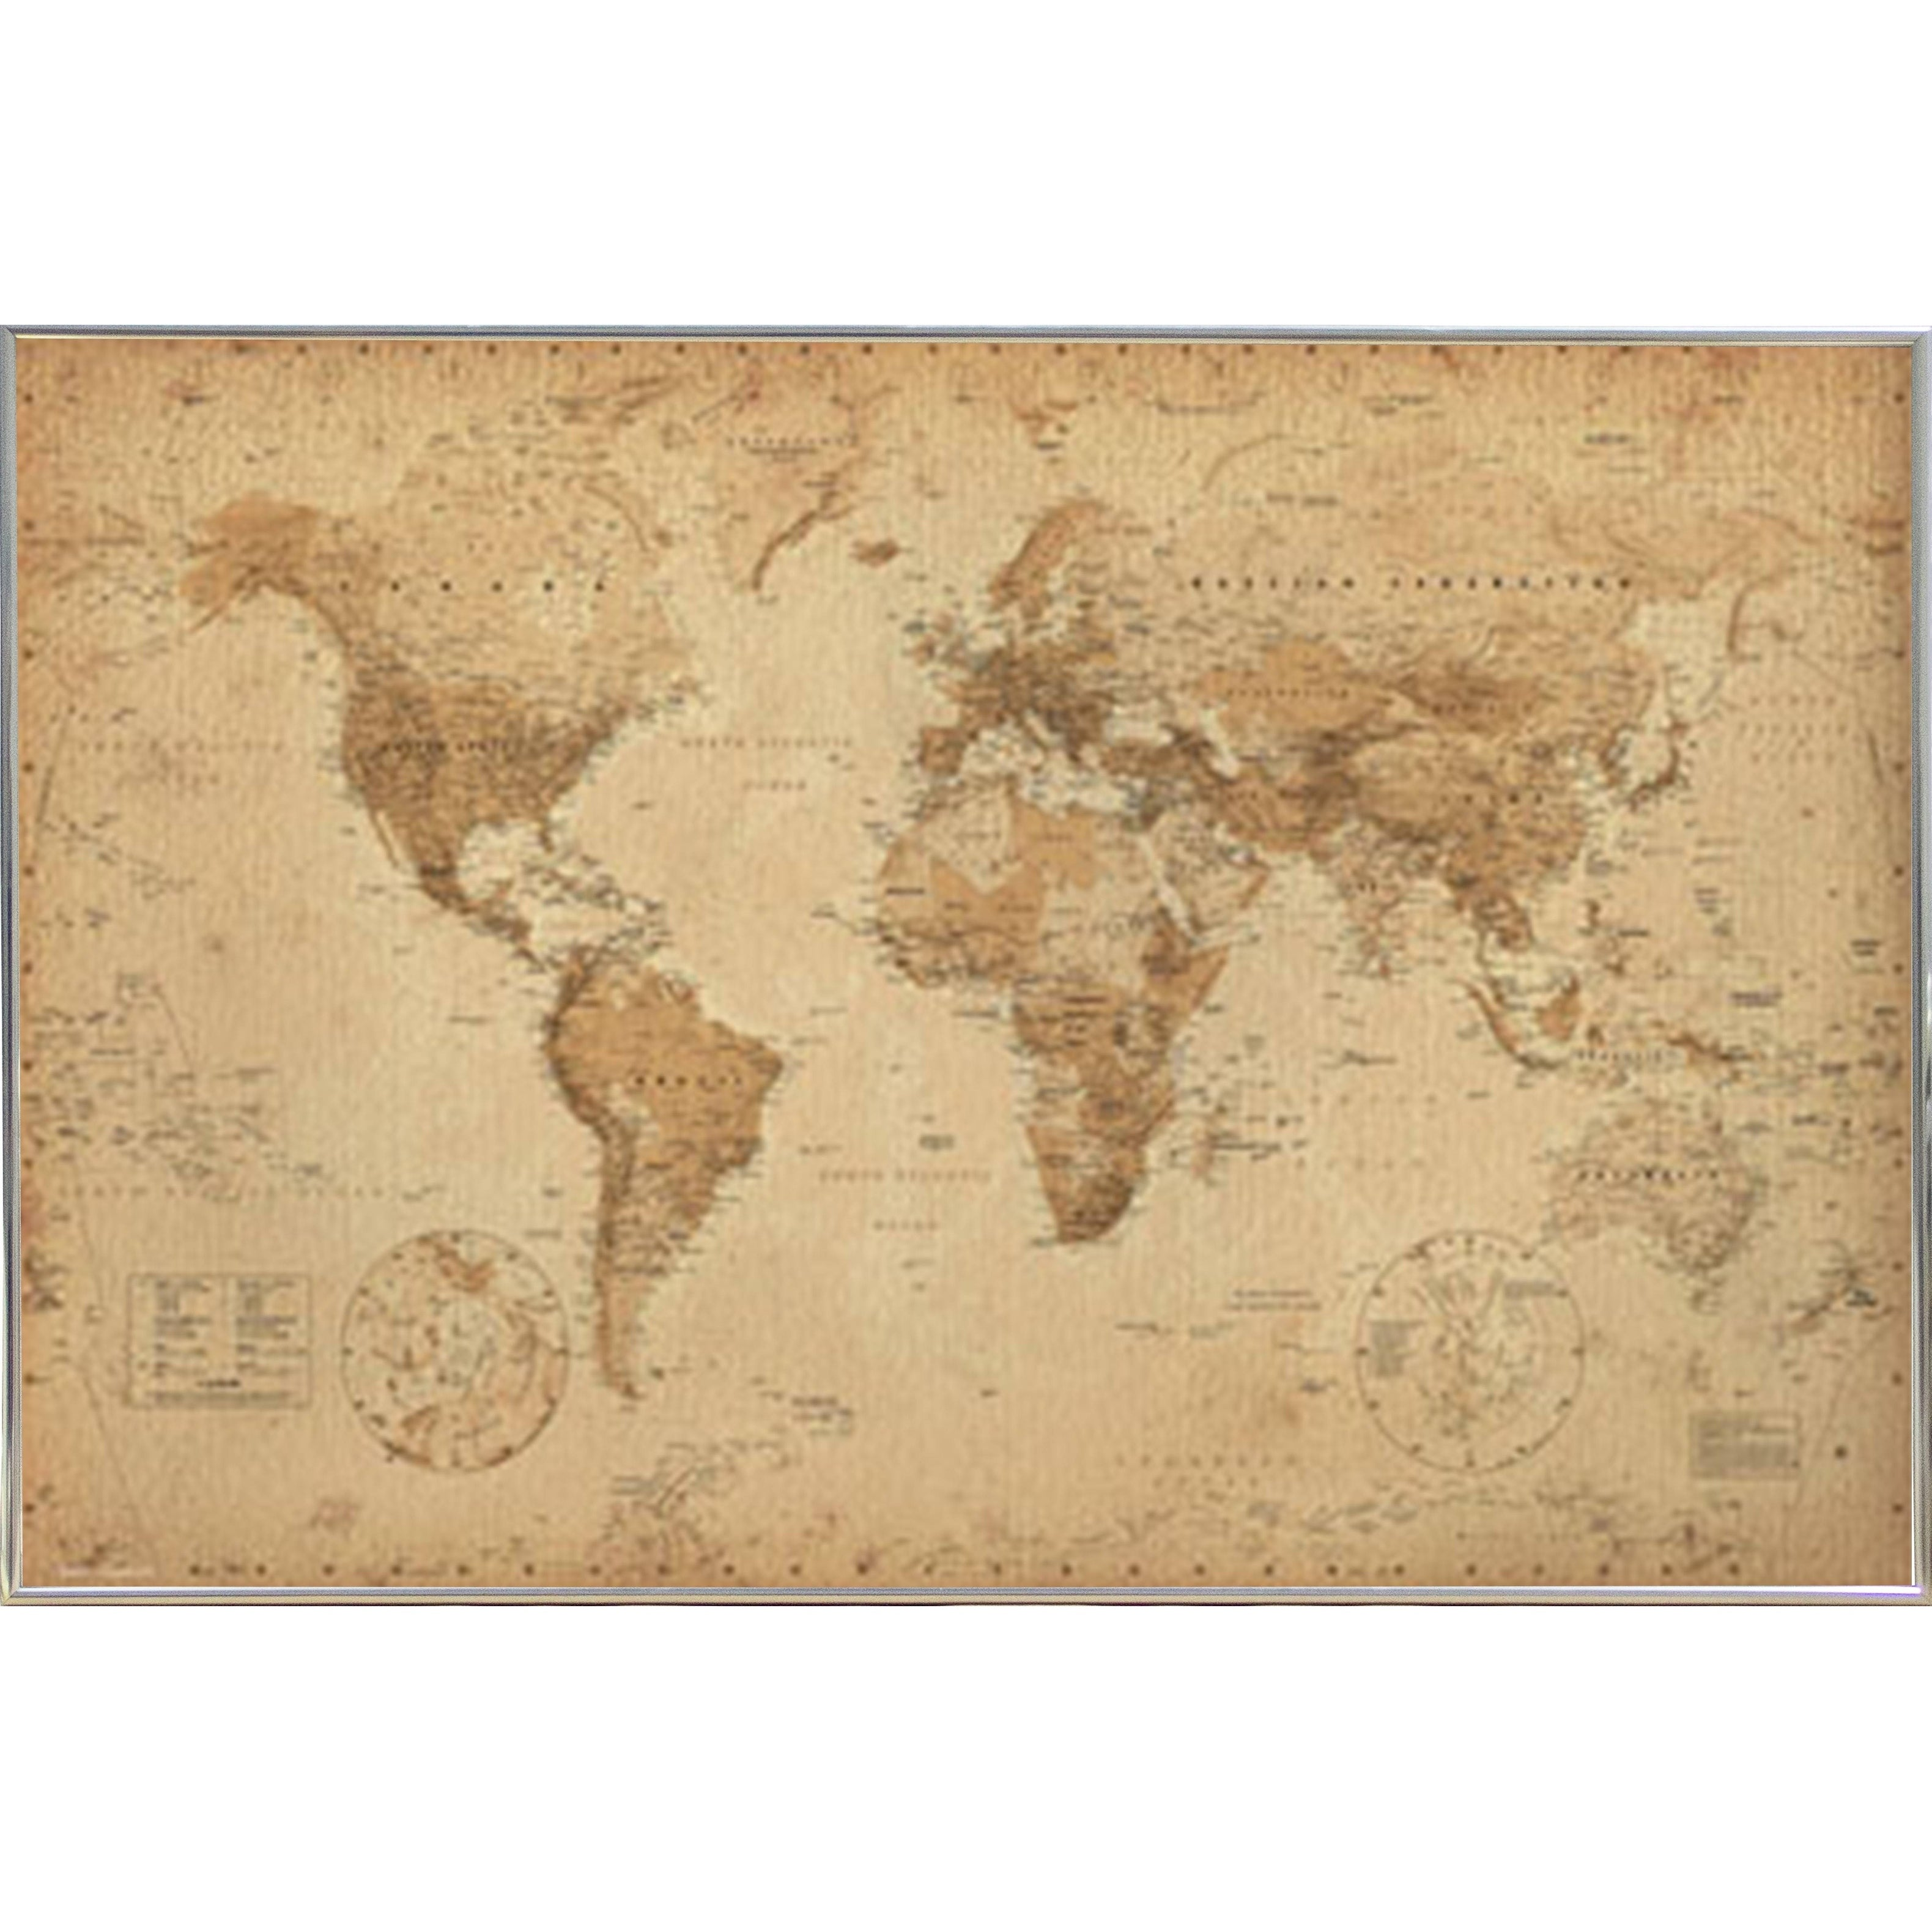 Shop World Map Antique With Choice of Frame (24x36) - Free Shipping ...